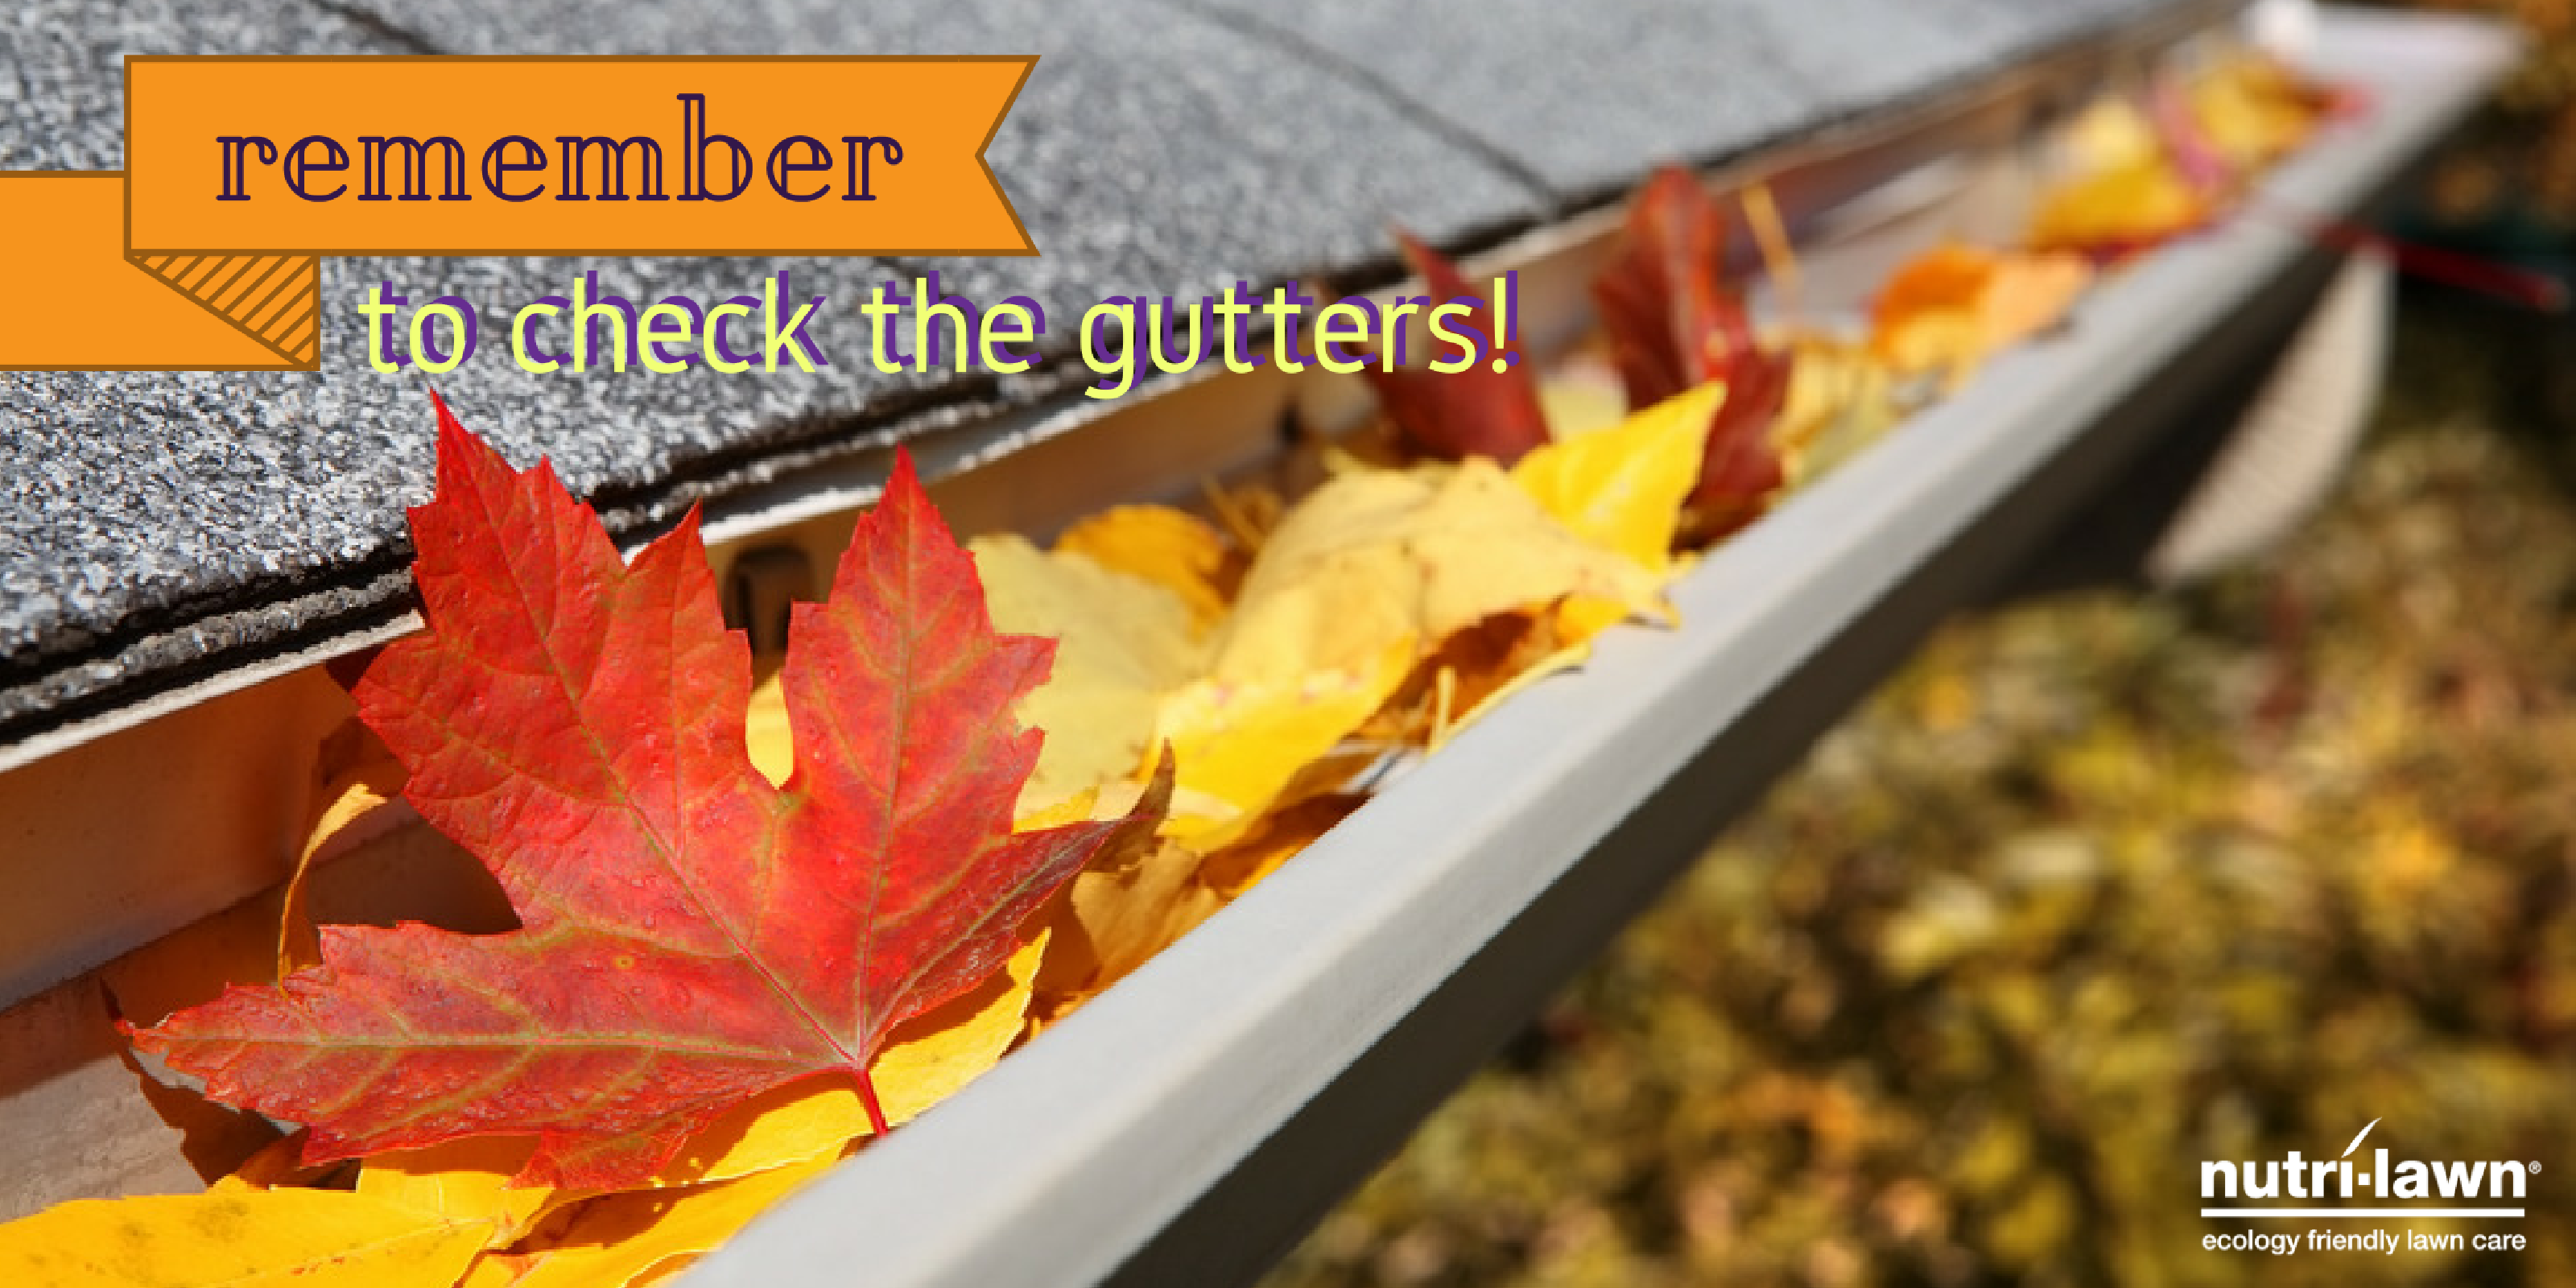 Before you finish up, grab the ladder and check those gutters.